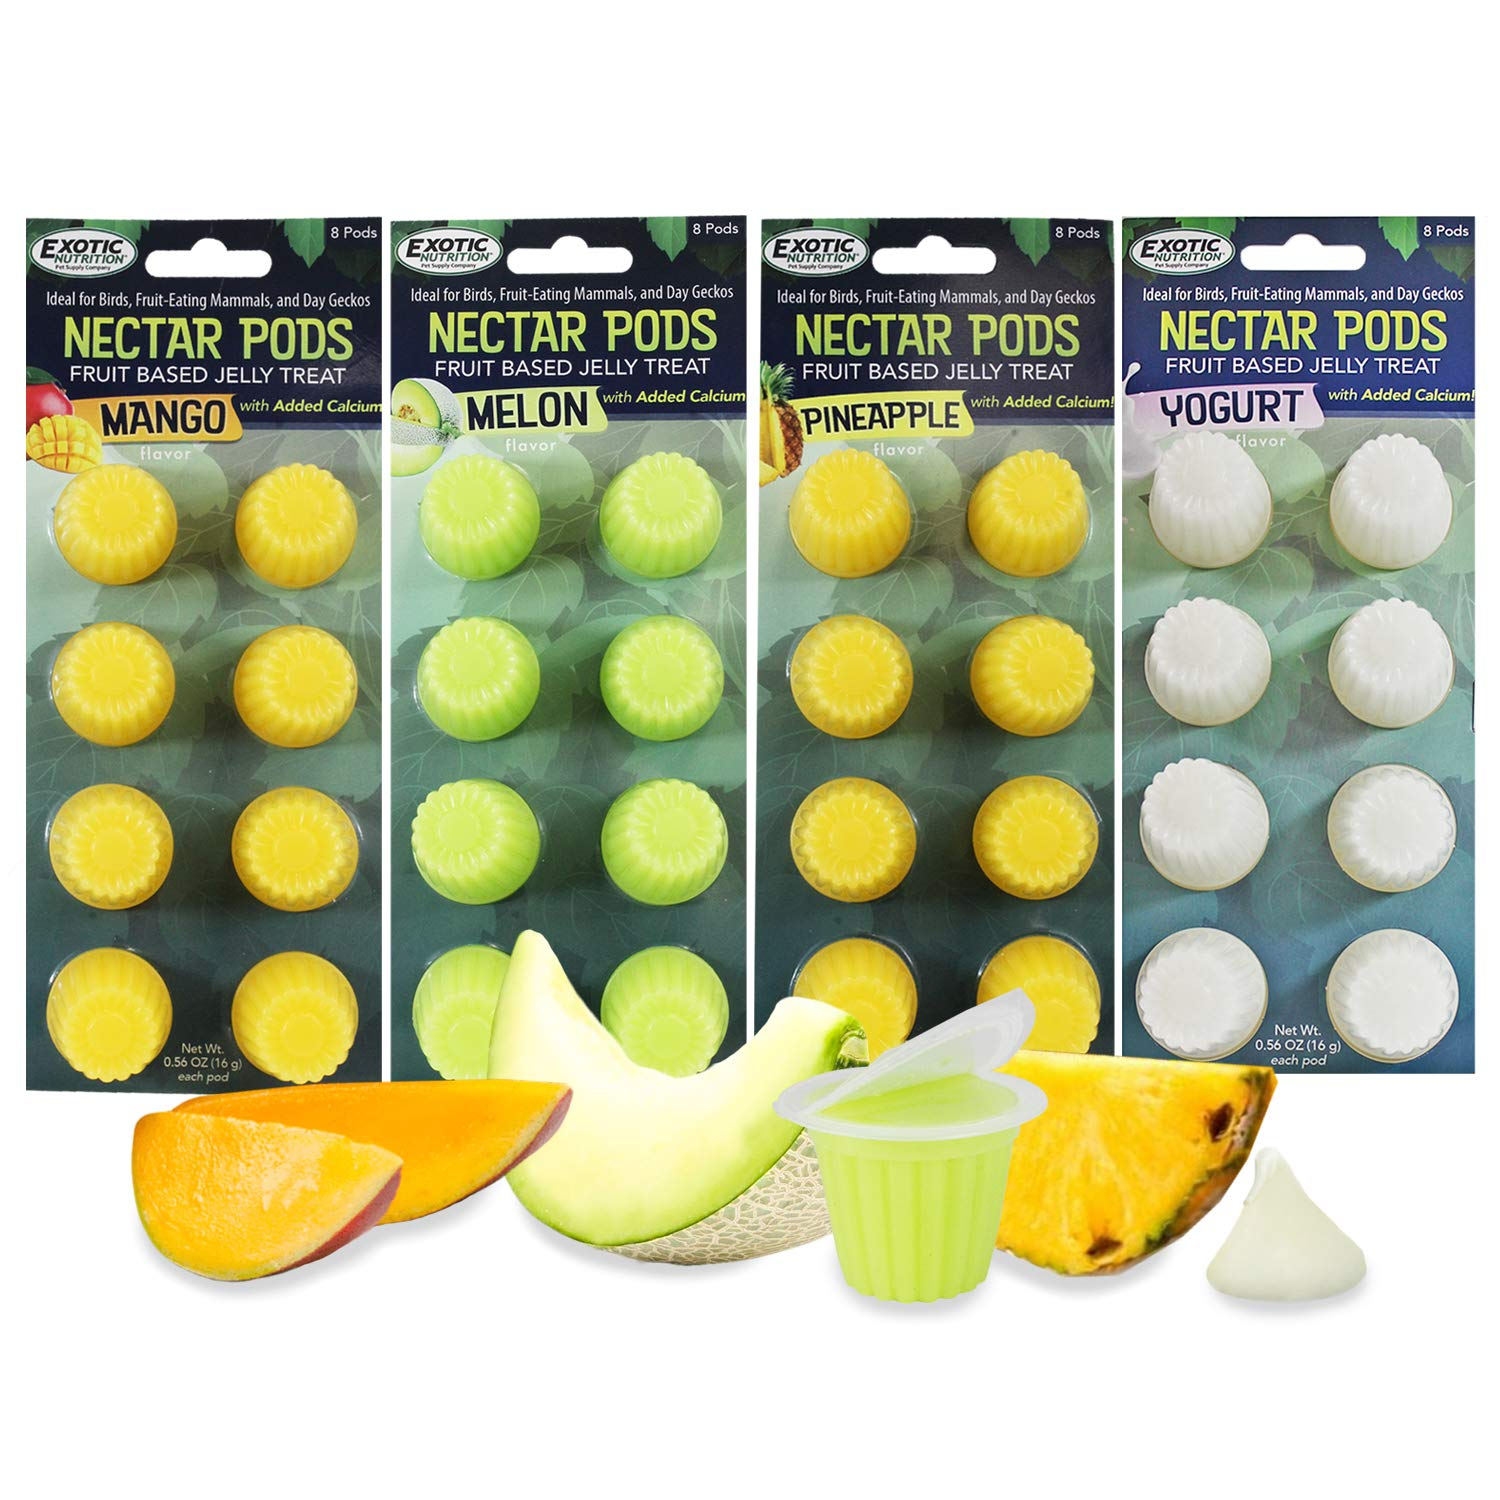 Nectar Pods - Calcium-Fortified Jelly Fruit Treat - Sugar Gliders, Marmosets, Squirrels, Parrots, Cockatiels, Parakeets, Lovebirds, Birds, Hamsters, Day Geckos, Kinkajous & Other Small Pets